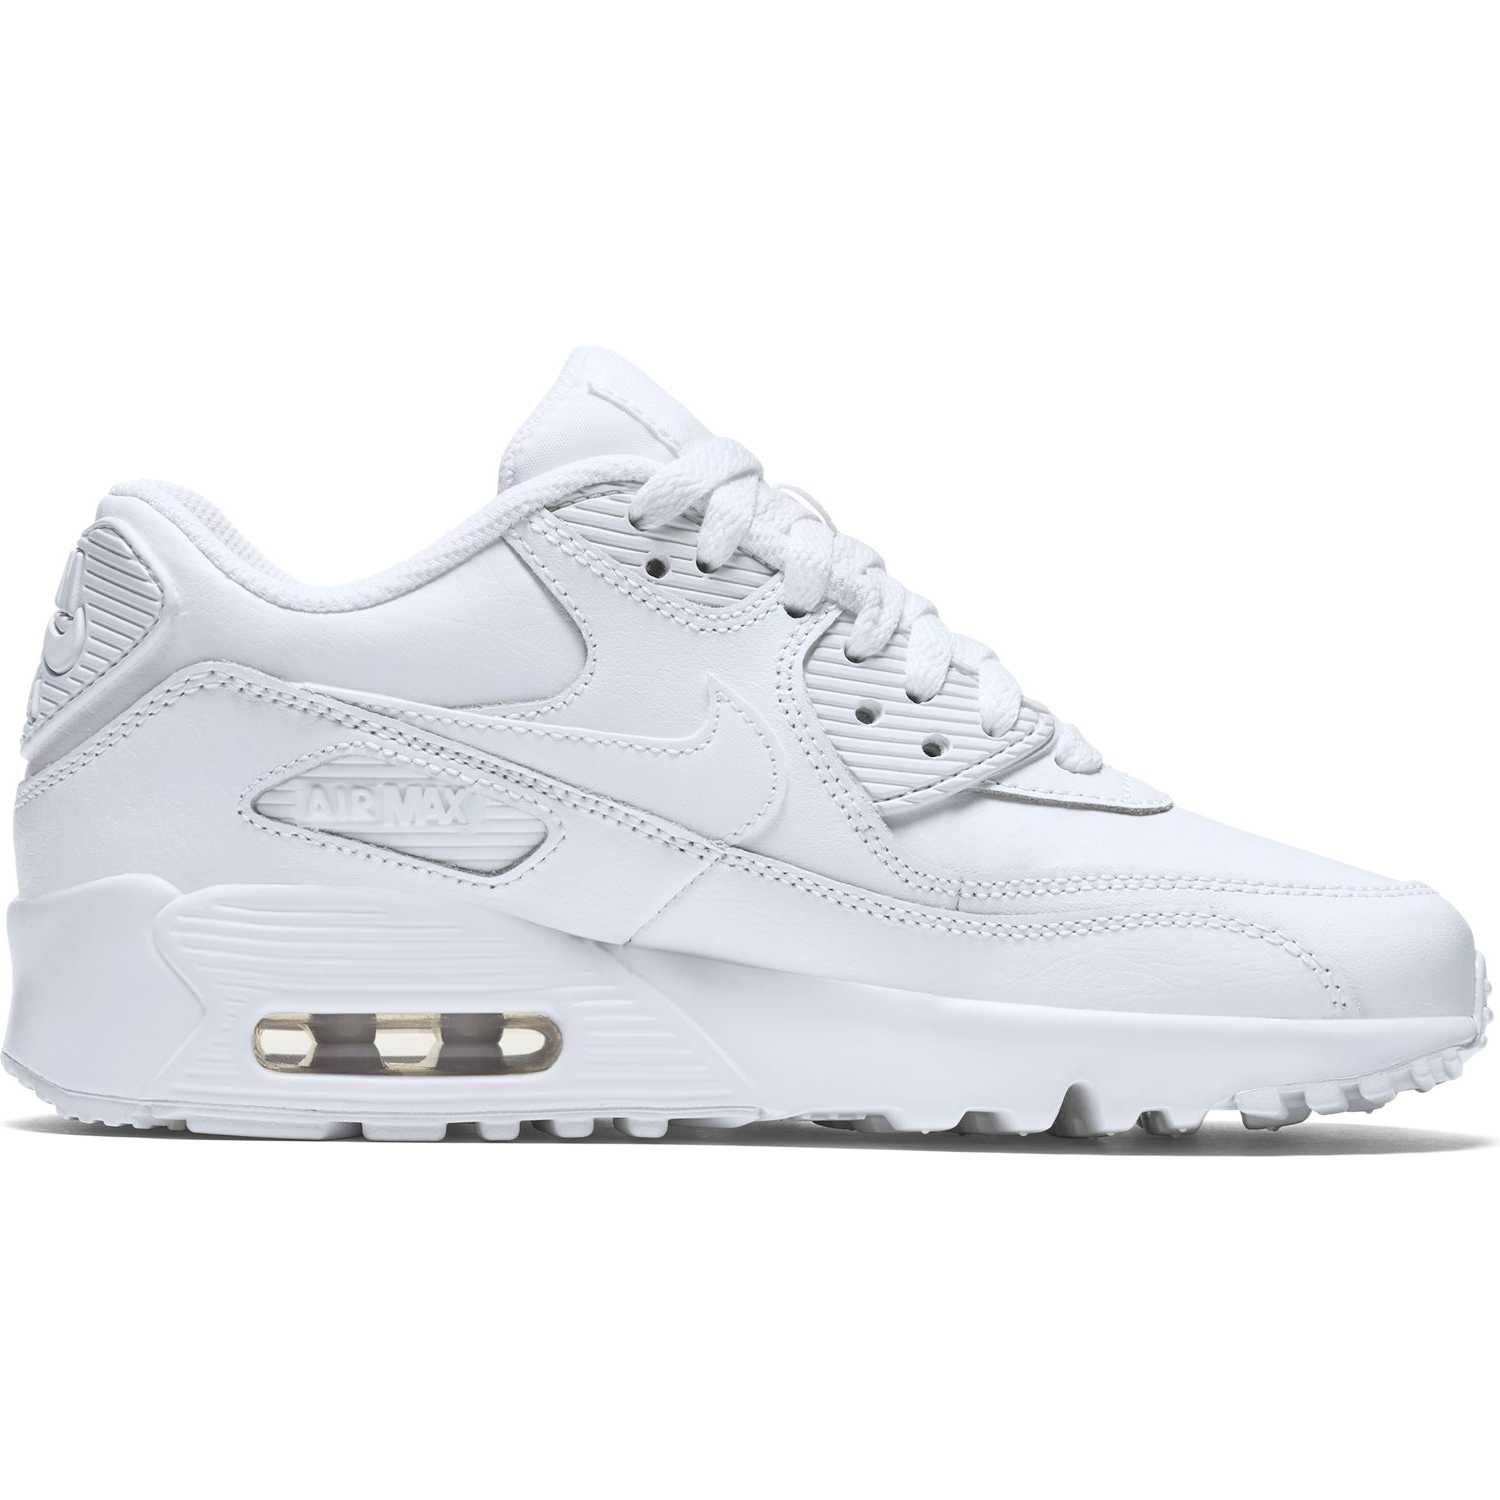 BUTY JUNIOR LIFESTYLE NIKE AIR MAX 90 LEATHER BIAŁE 833412-100